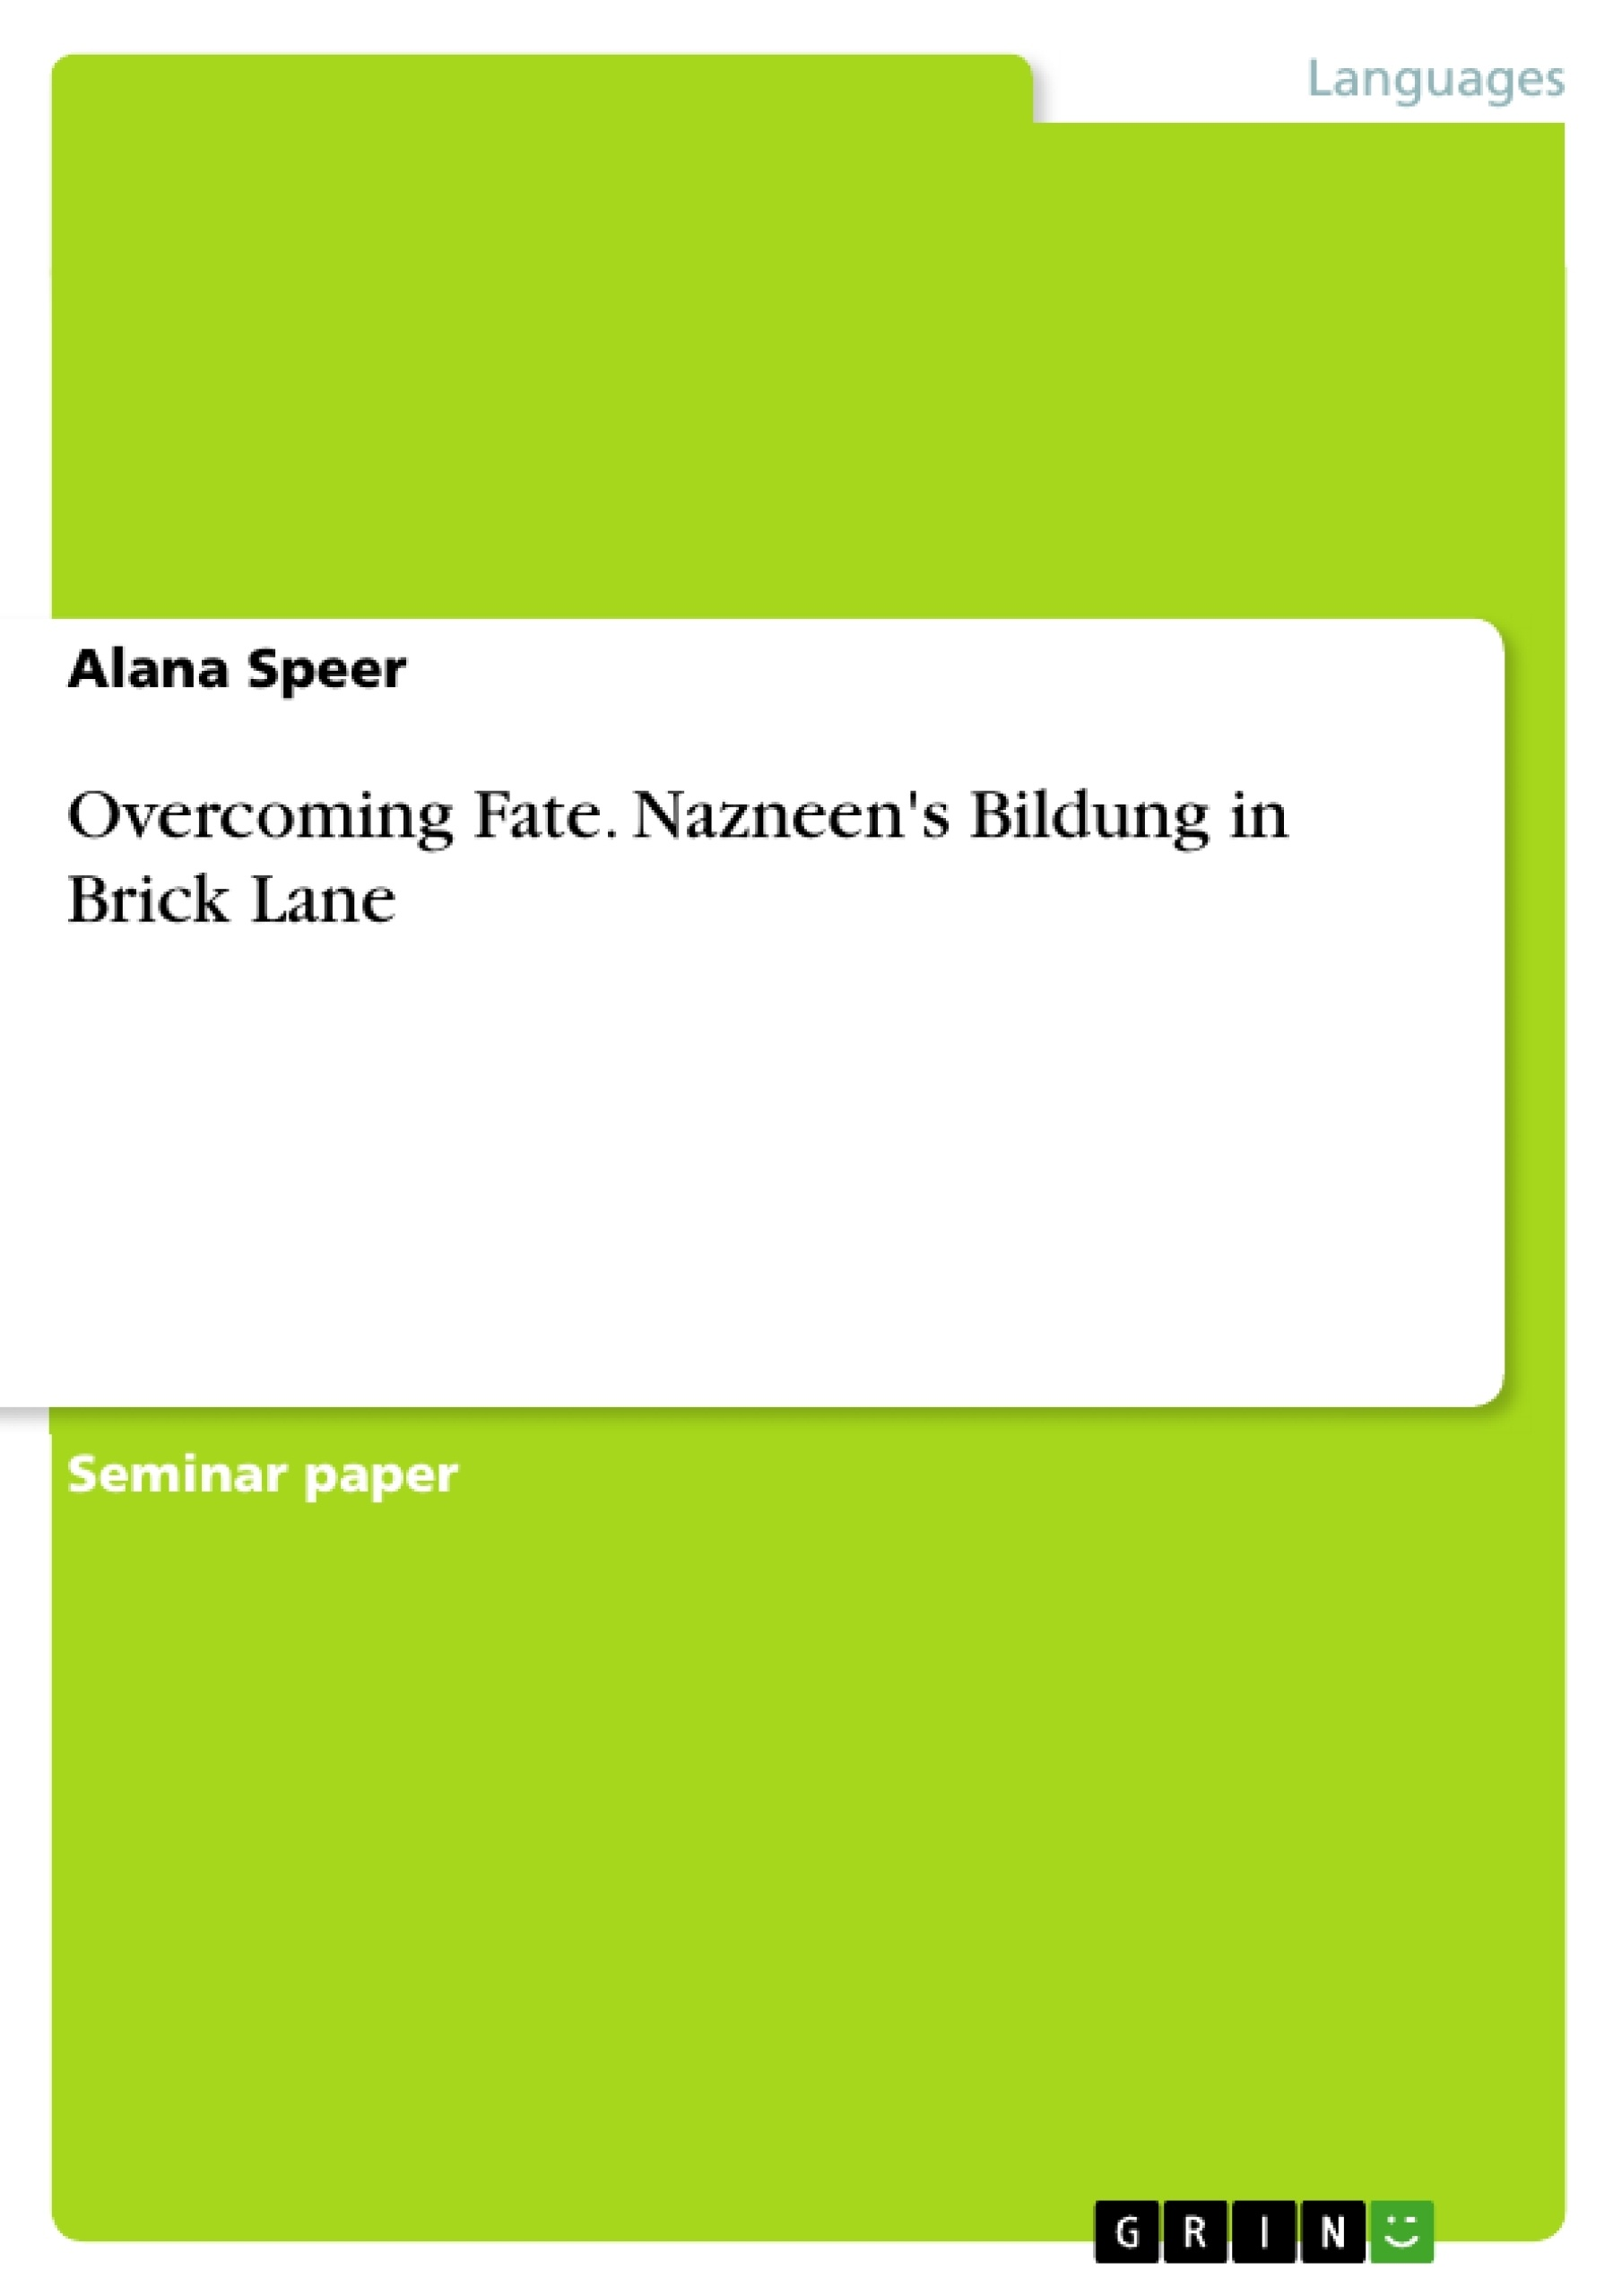 Overcoming Fate Nazneen's Bildung In Brick Lane  Publish Your Master's  Thesis, Bachelor's Thesis, Essay Or Term Paper